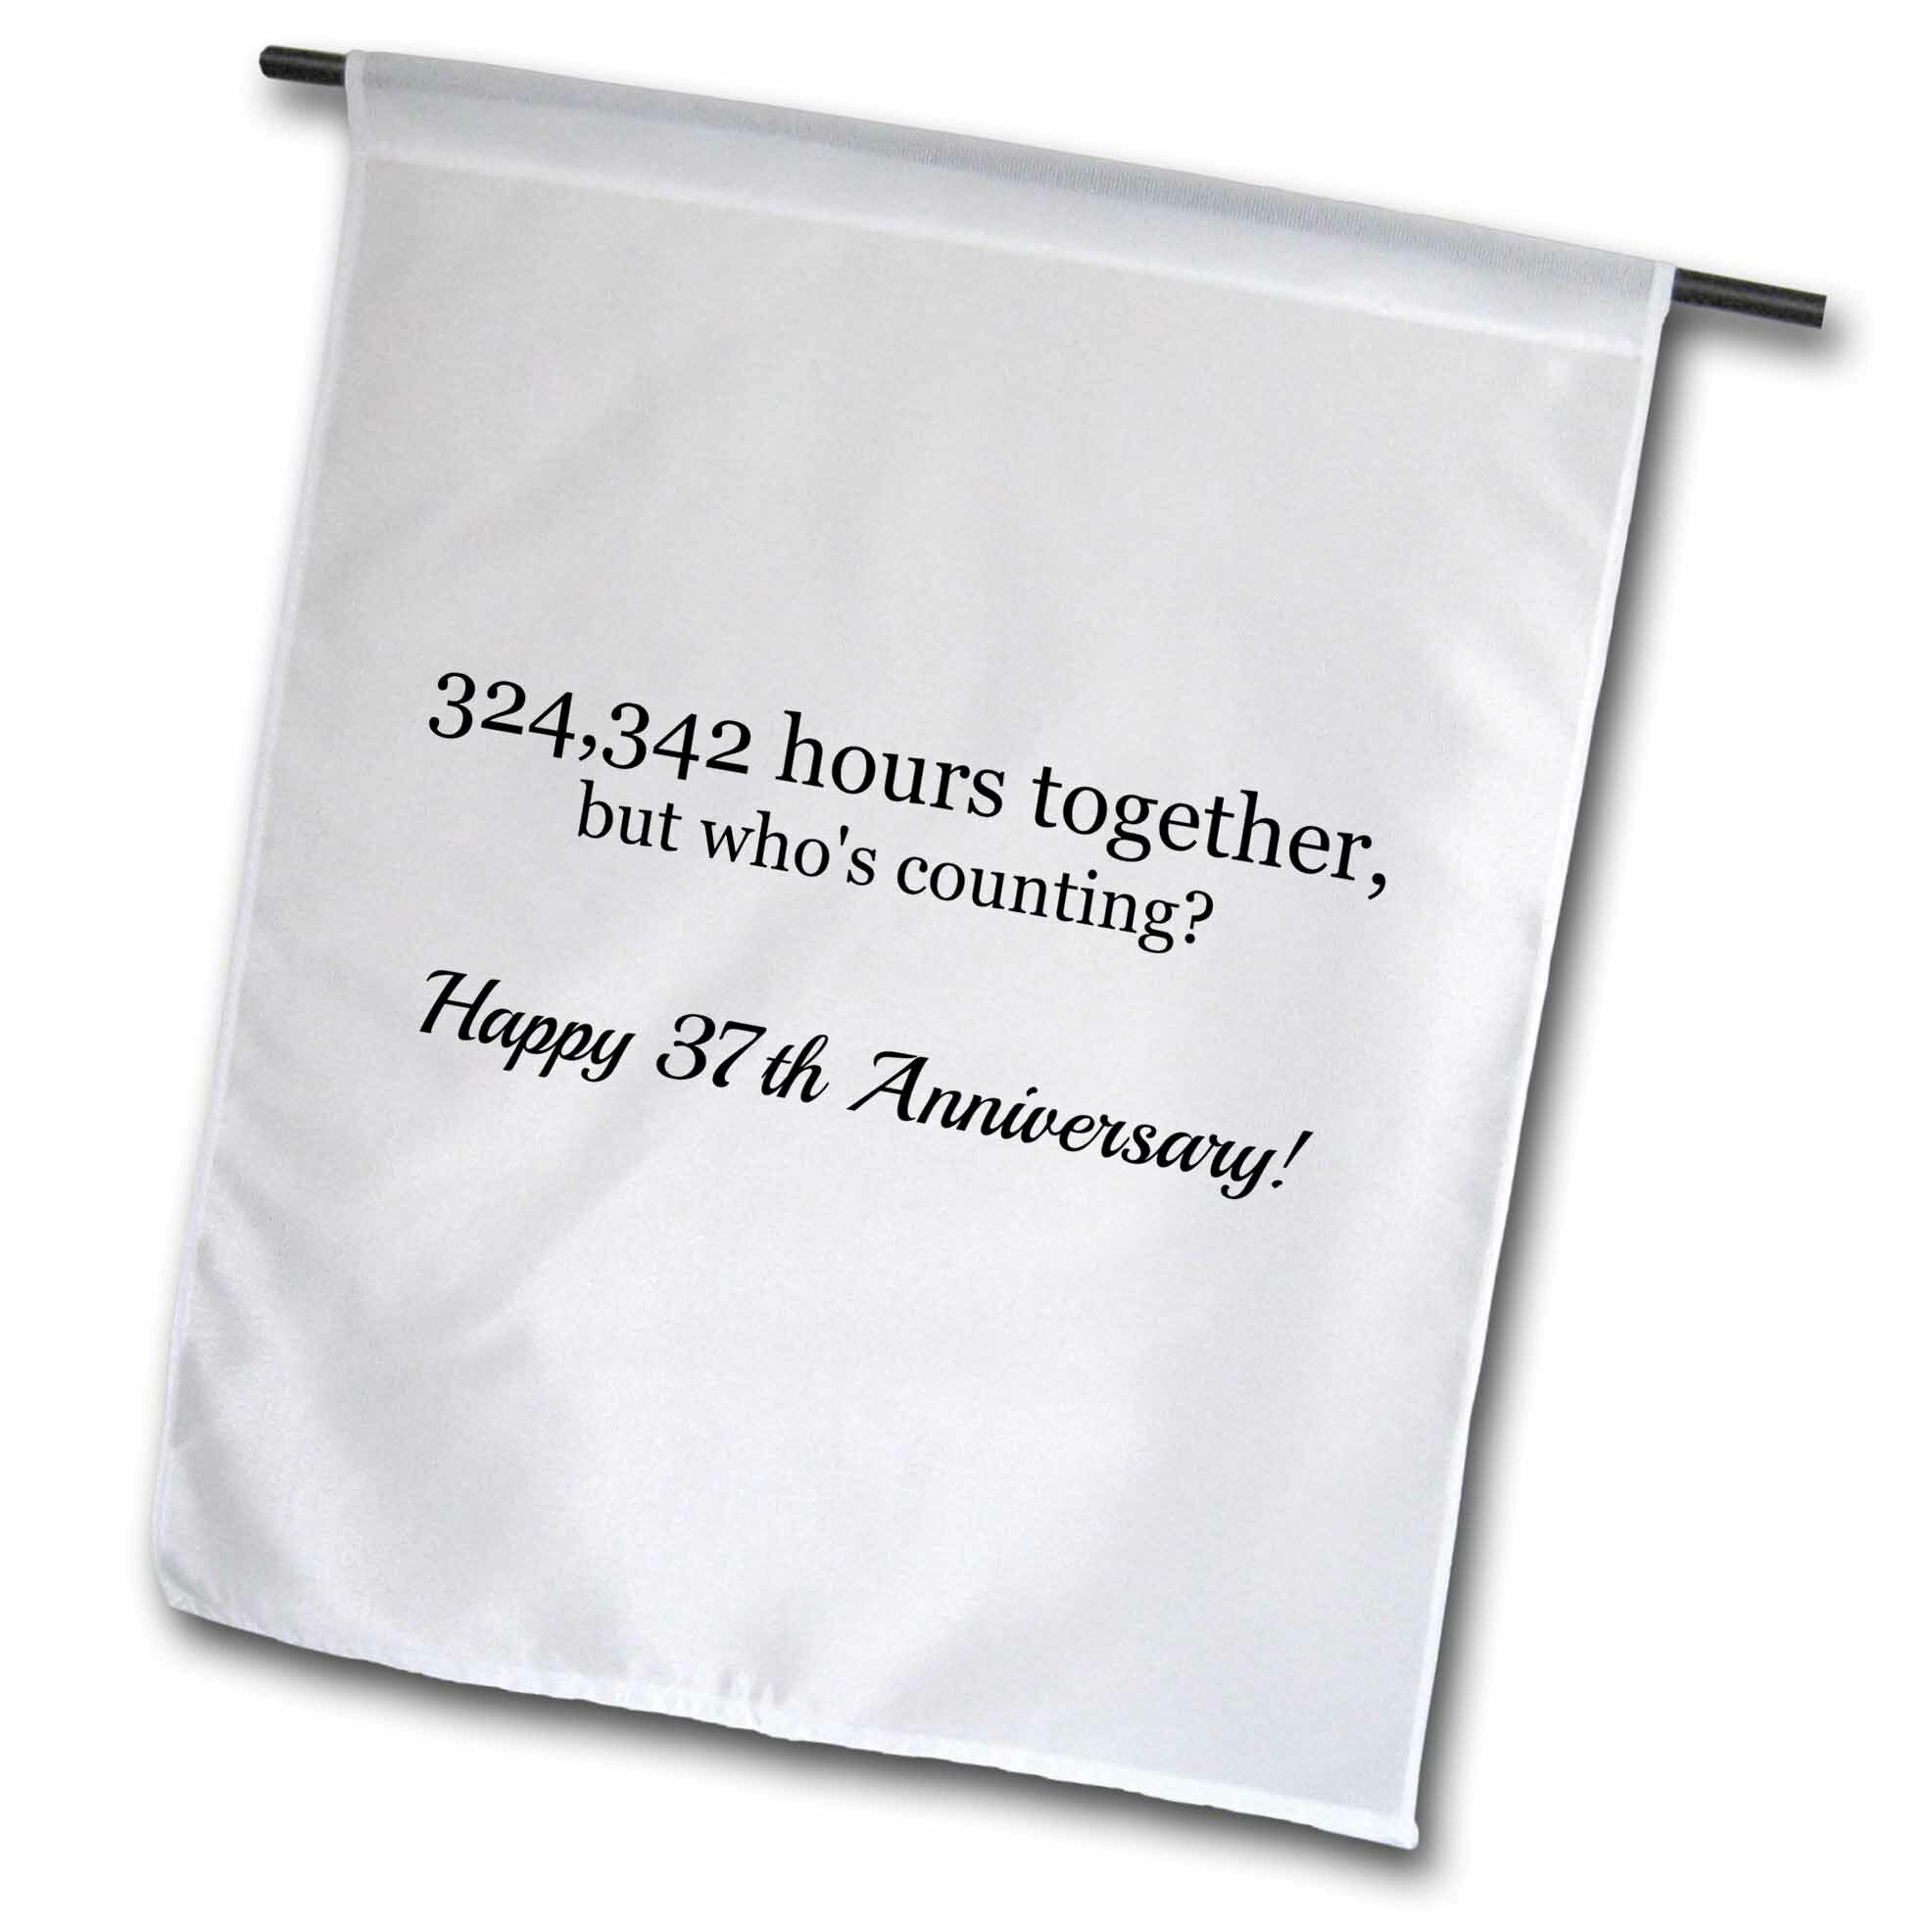 3drose Happy 37th Anniversary 324342 Hours Together Polyester 23